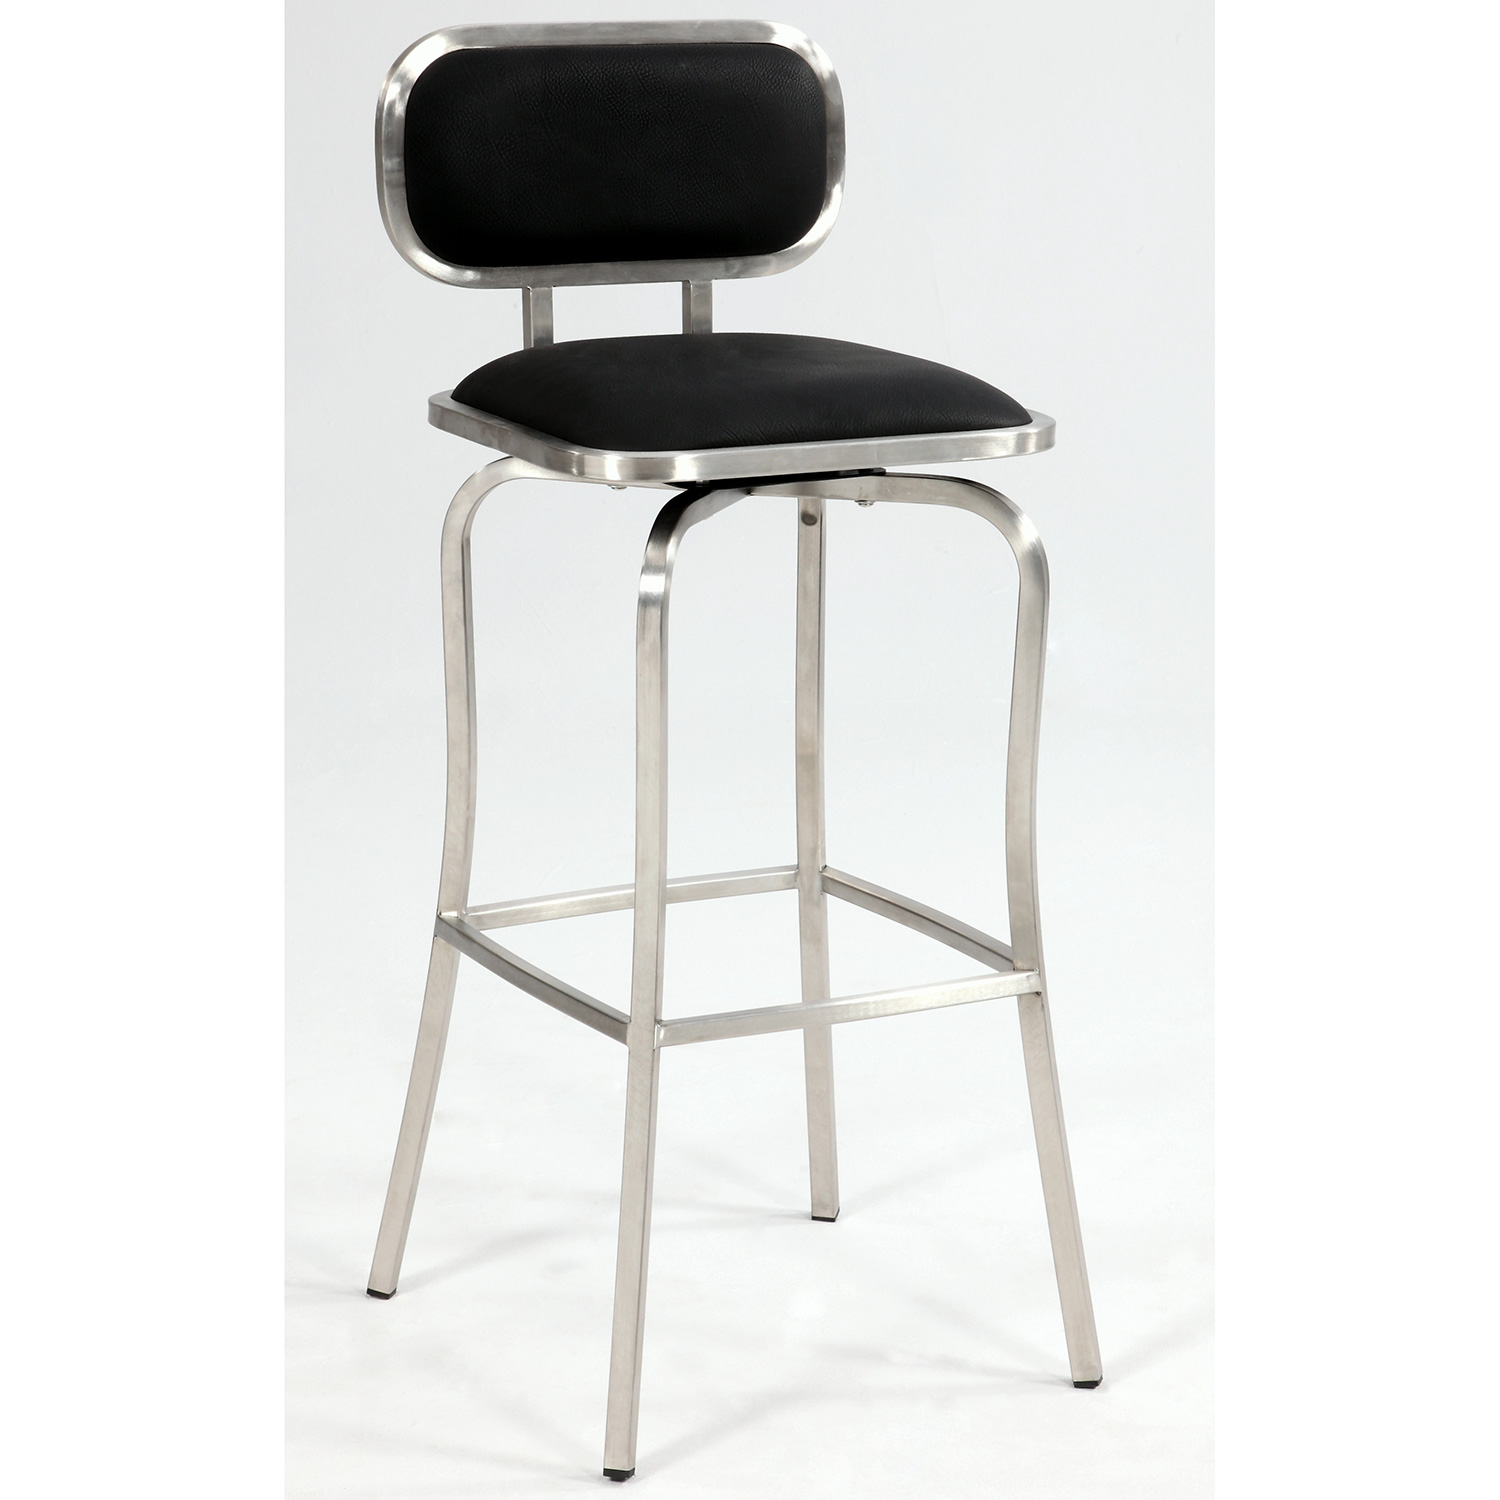 Wondrous Modern Swivel Bar Stool In Black Leatherette Brushed Stainless Steel By Chintaly Imports Gmtry Best Dining Table And Chair Ideas Images Gmtryco